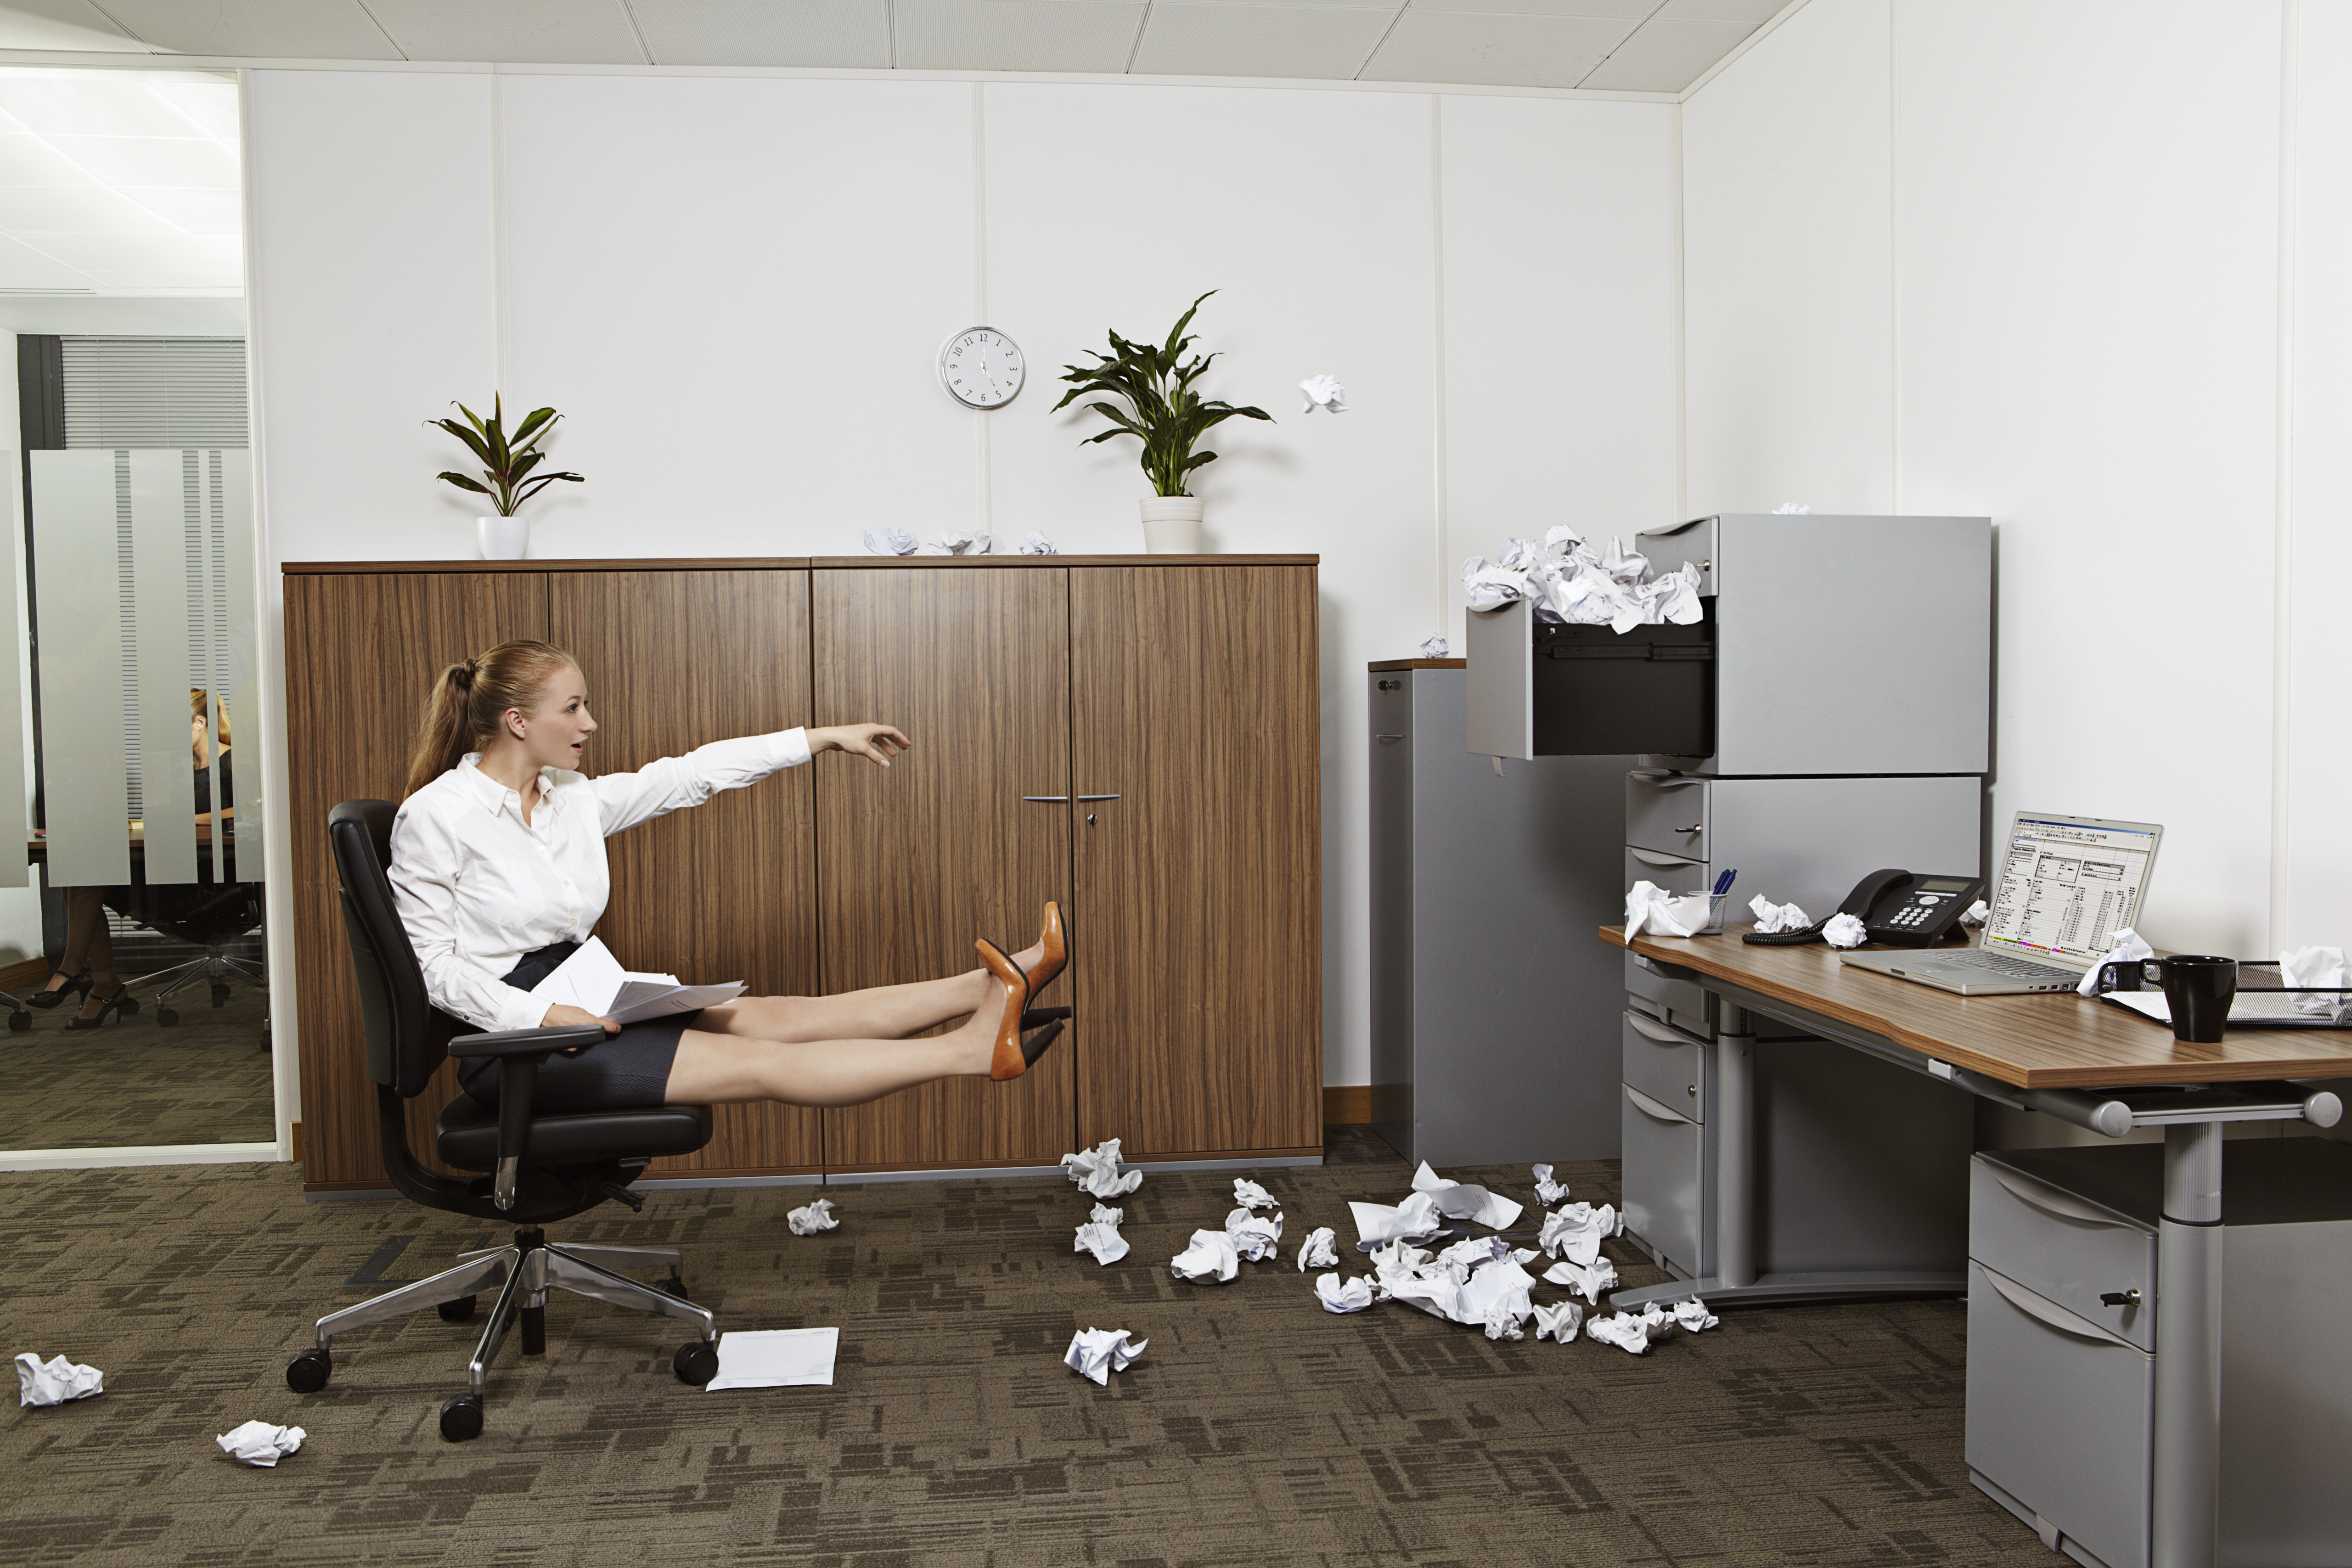 Businesswoman throwing crumpled paper into file cabinet